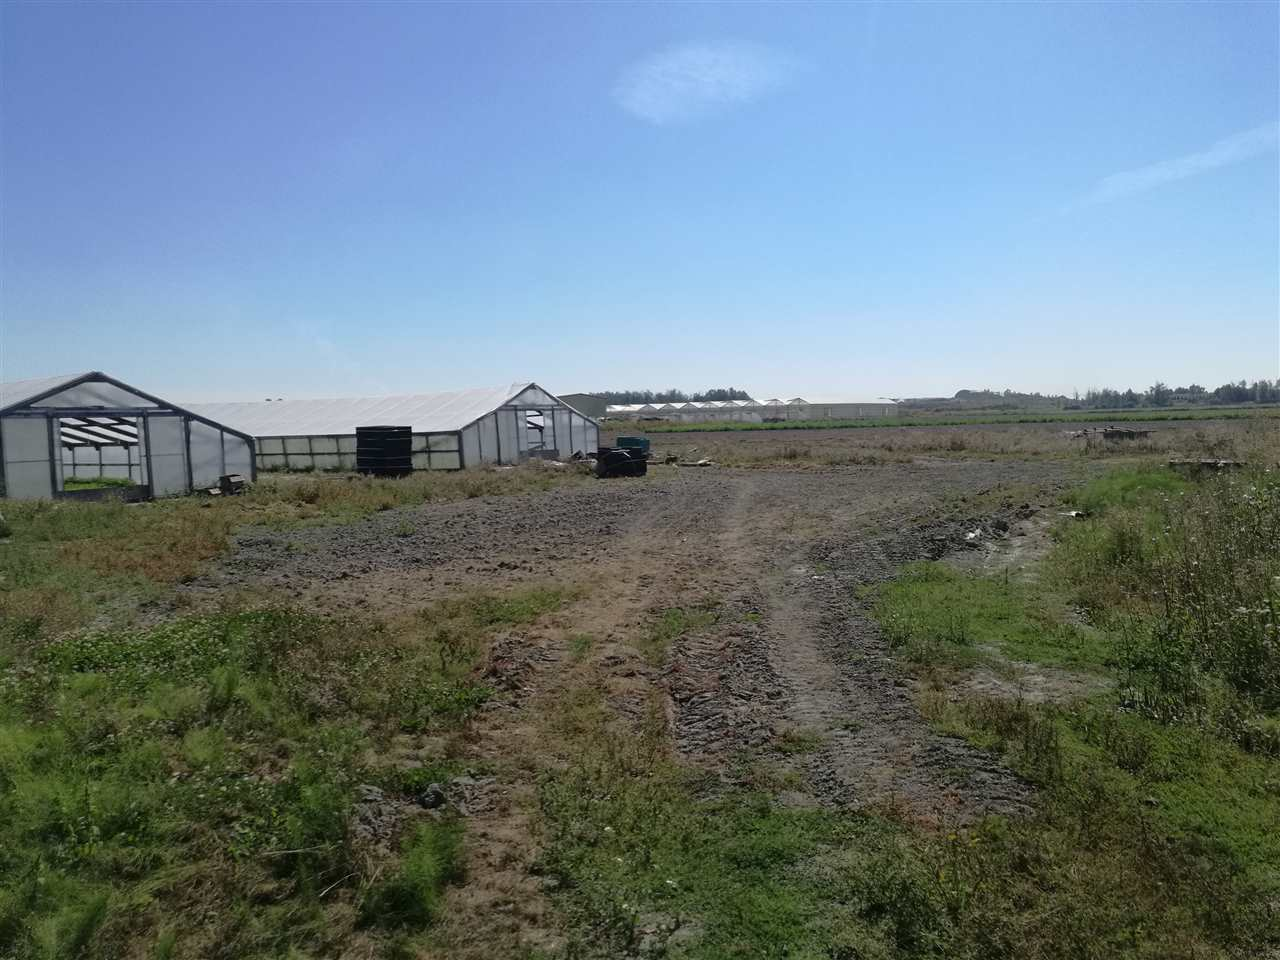 Very rare 51.65 acres farmland in Richmond, next to industry, golf course, highway. Mainly land value. House is still liveable though. Good potential for future development. 49.3 acres land & house next door at 14540 Westminster listed for sale as well, to add up to 100 acres total. Both age and measurements are approximate. Need to be verified by Buyer and Buyer?s agent if deemed important. The property is rented to a farm and at least 48 hours notice for all showings. Absolutely not walk on the property without presence of listing agent.